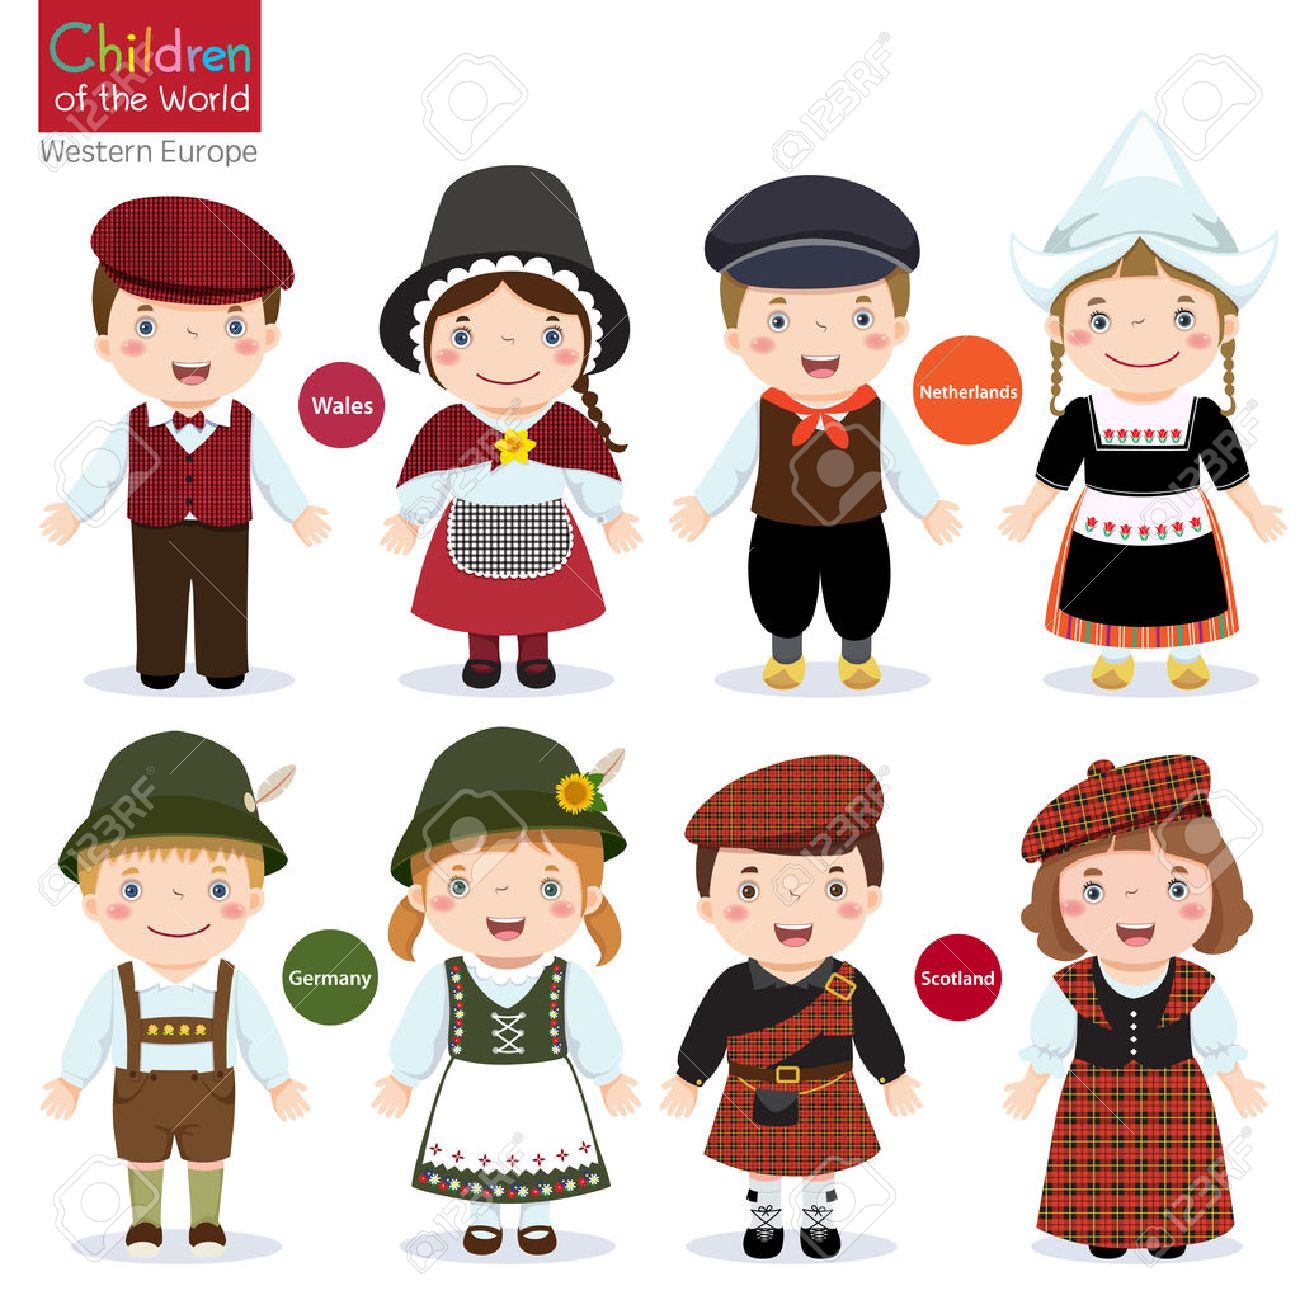 Kids in different traditional costumes Wales, Netherlands, Germany, Scotland - 53195129